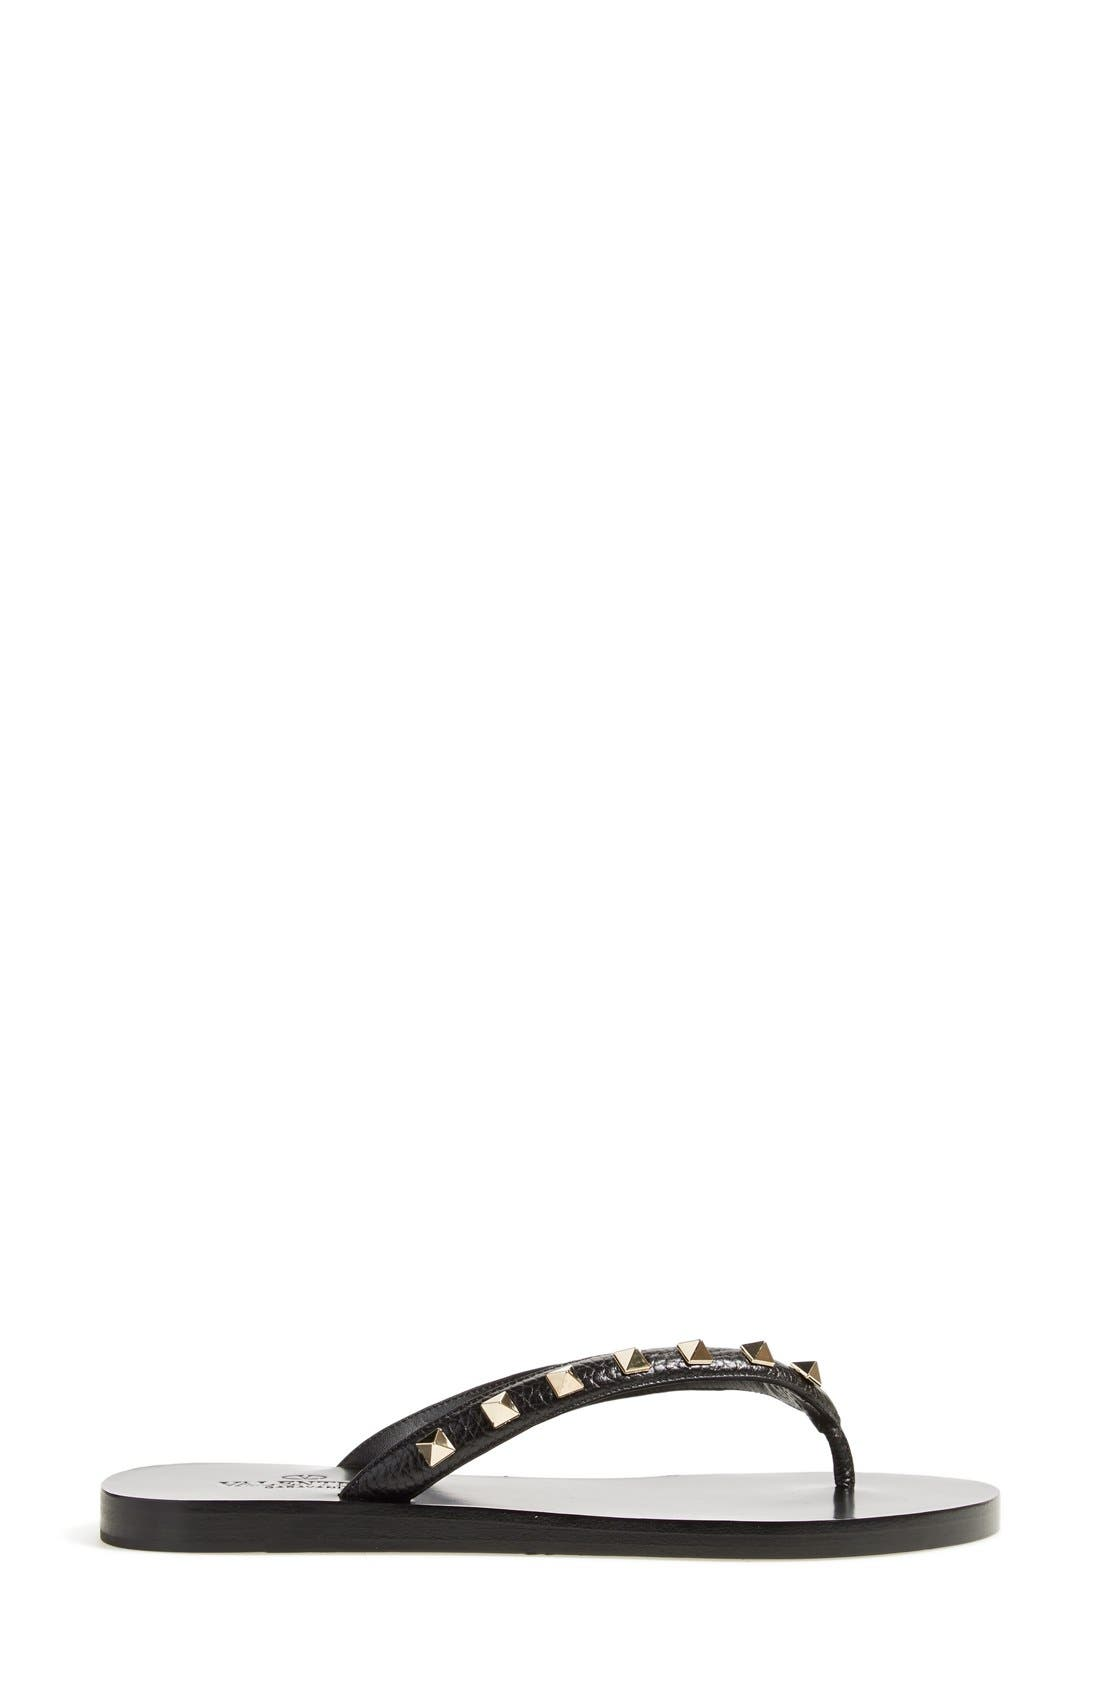 'Rockstud' Flip Flop,                             Alternate thumbnail 2, color,                             002